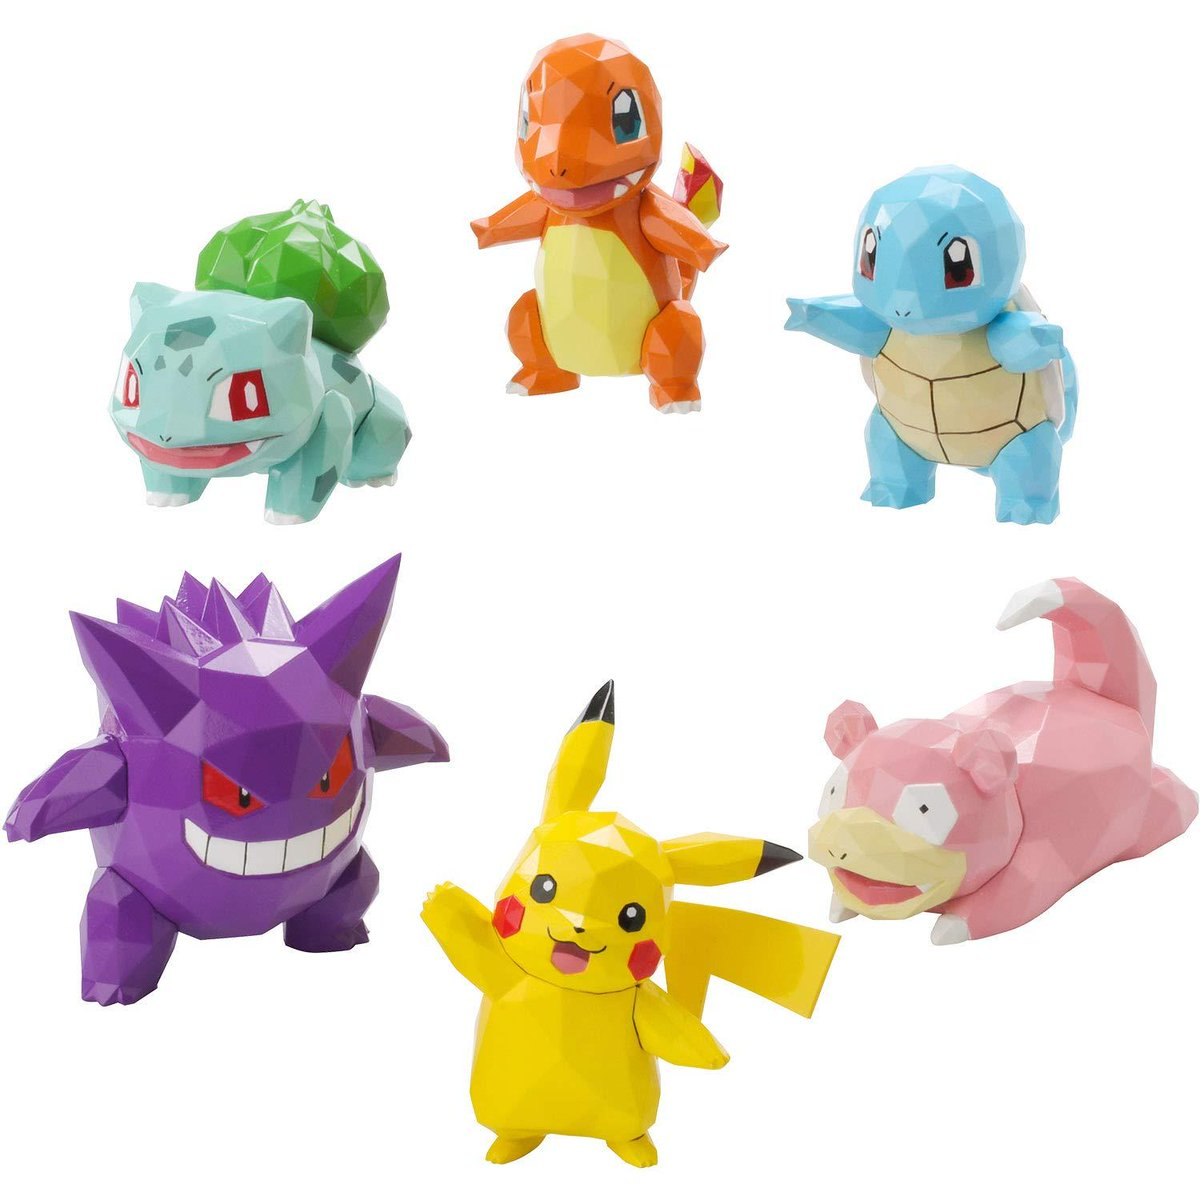 POLYGO Pokémon Mini Collection announced. Sold in boxes with random figure inside. Set of 8 boxes available for international shipping through Amazon Japan amzn.to/2KhJsmV